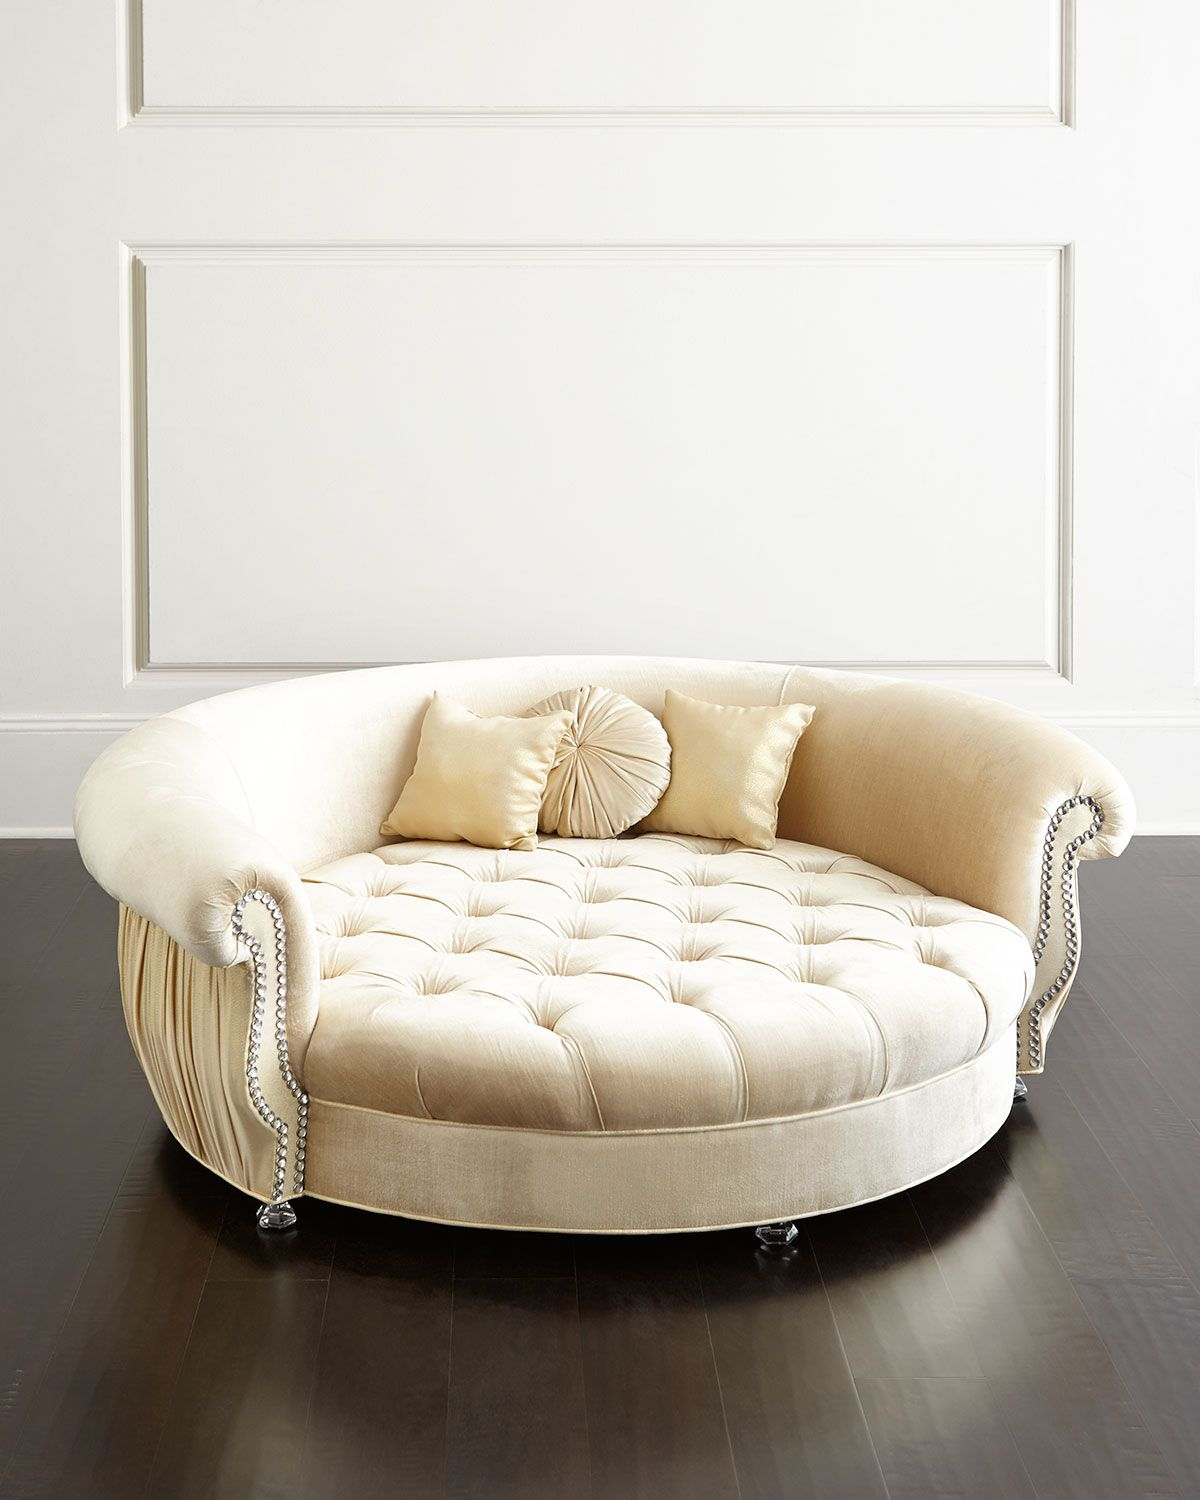 harlow cuddle chair walmart kitchen table chairs dog bed pinterest pet beds luxury